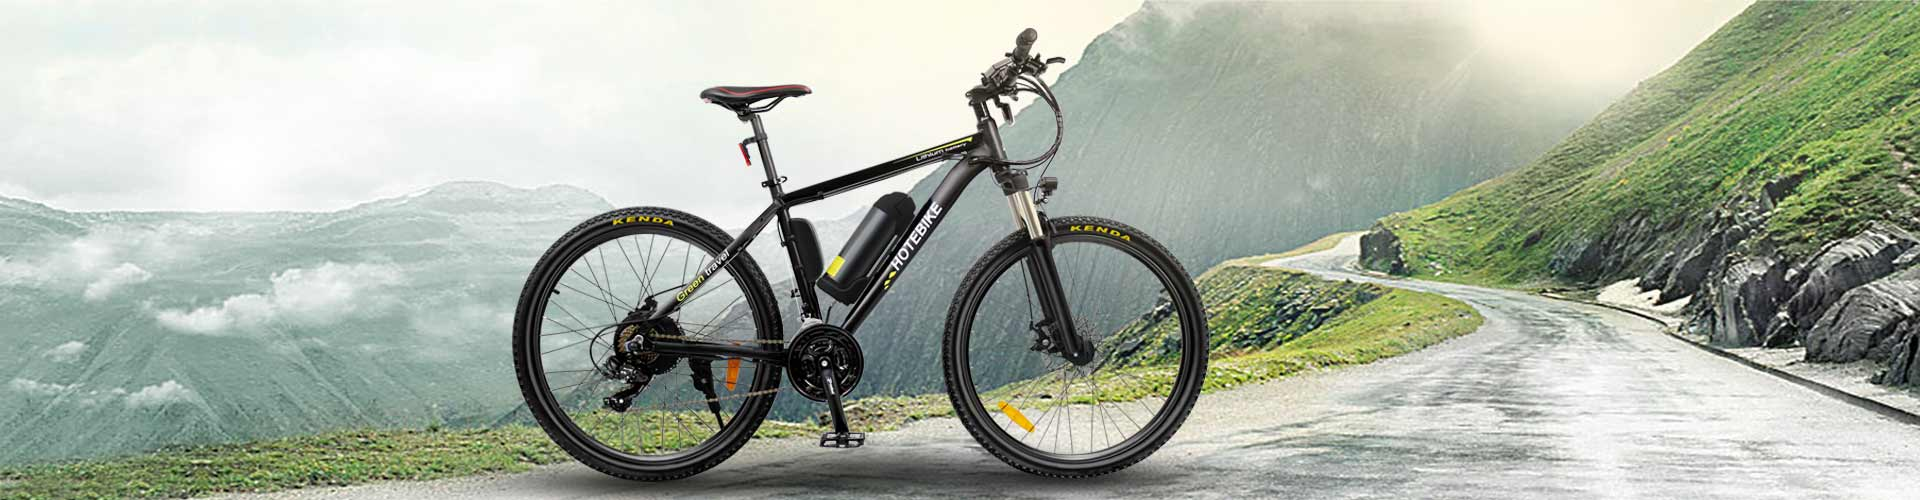 hot electric mountain bike on sale